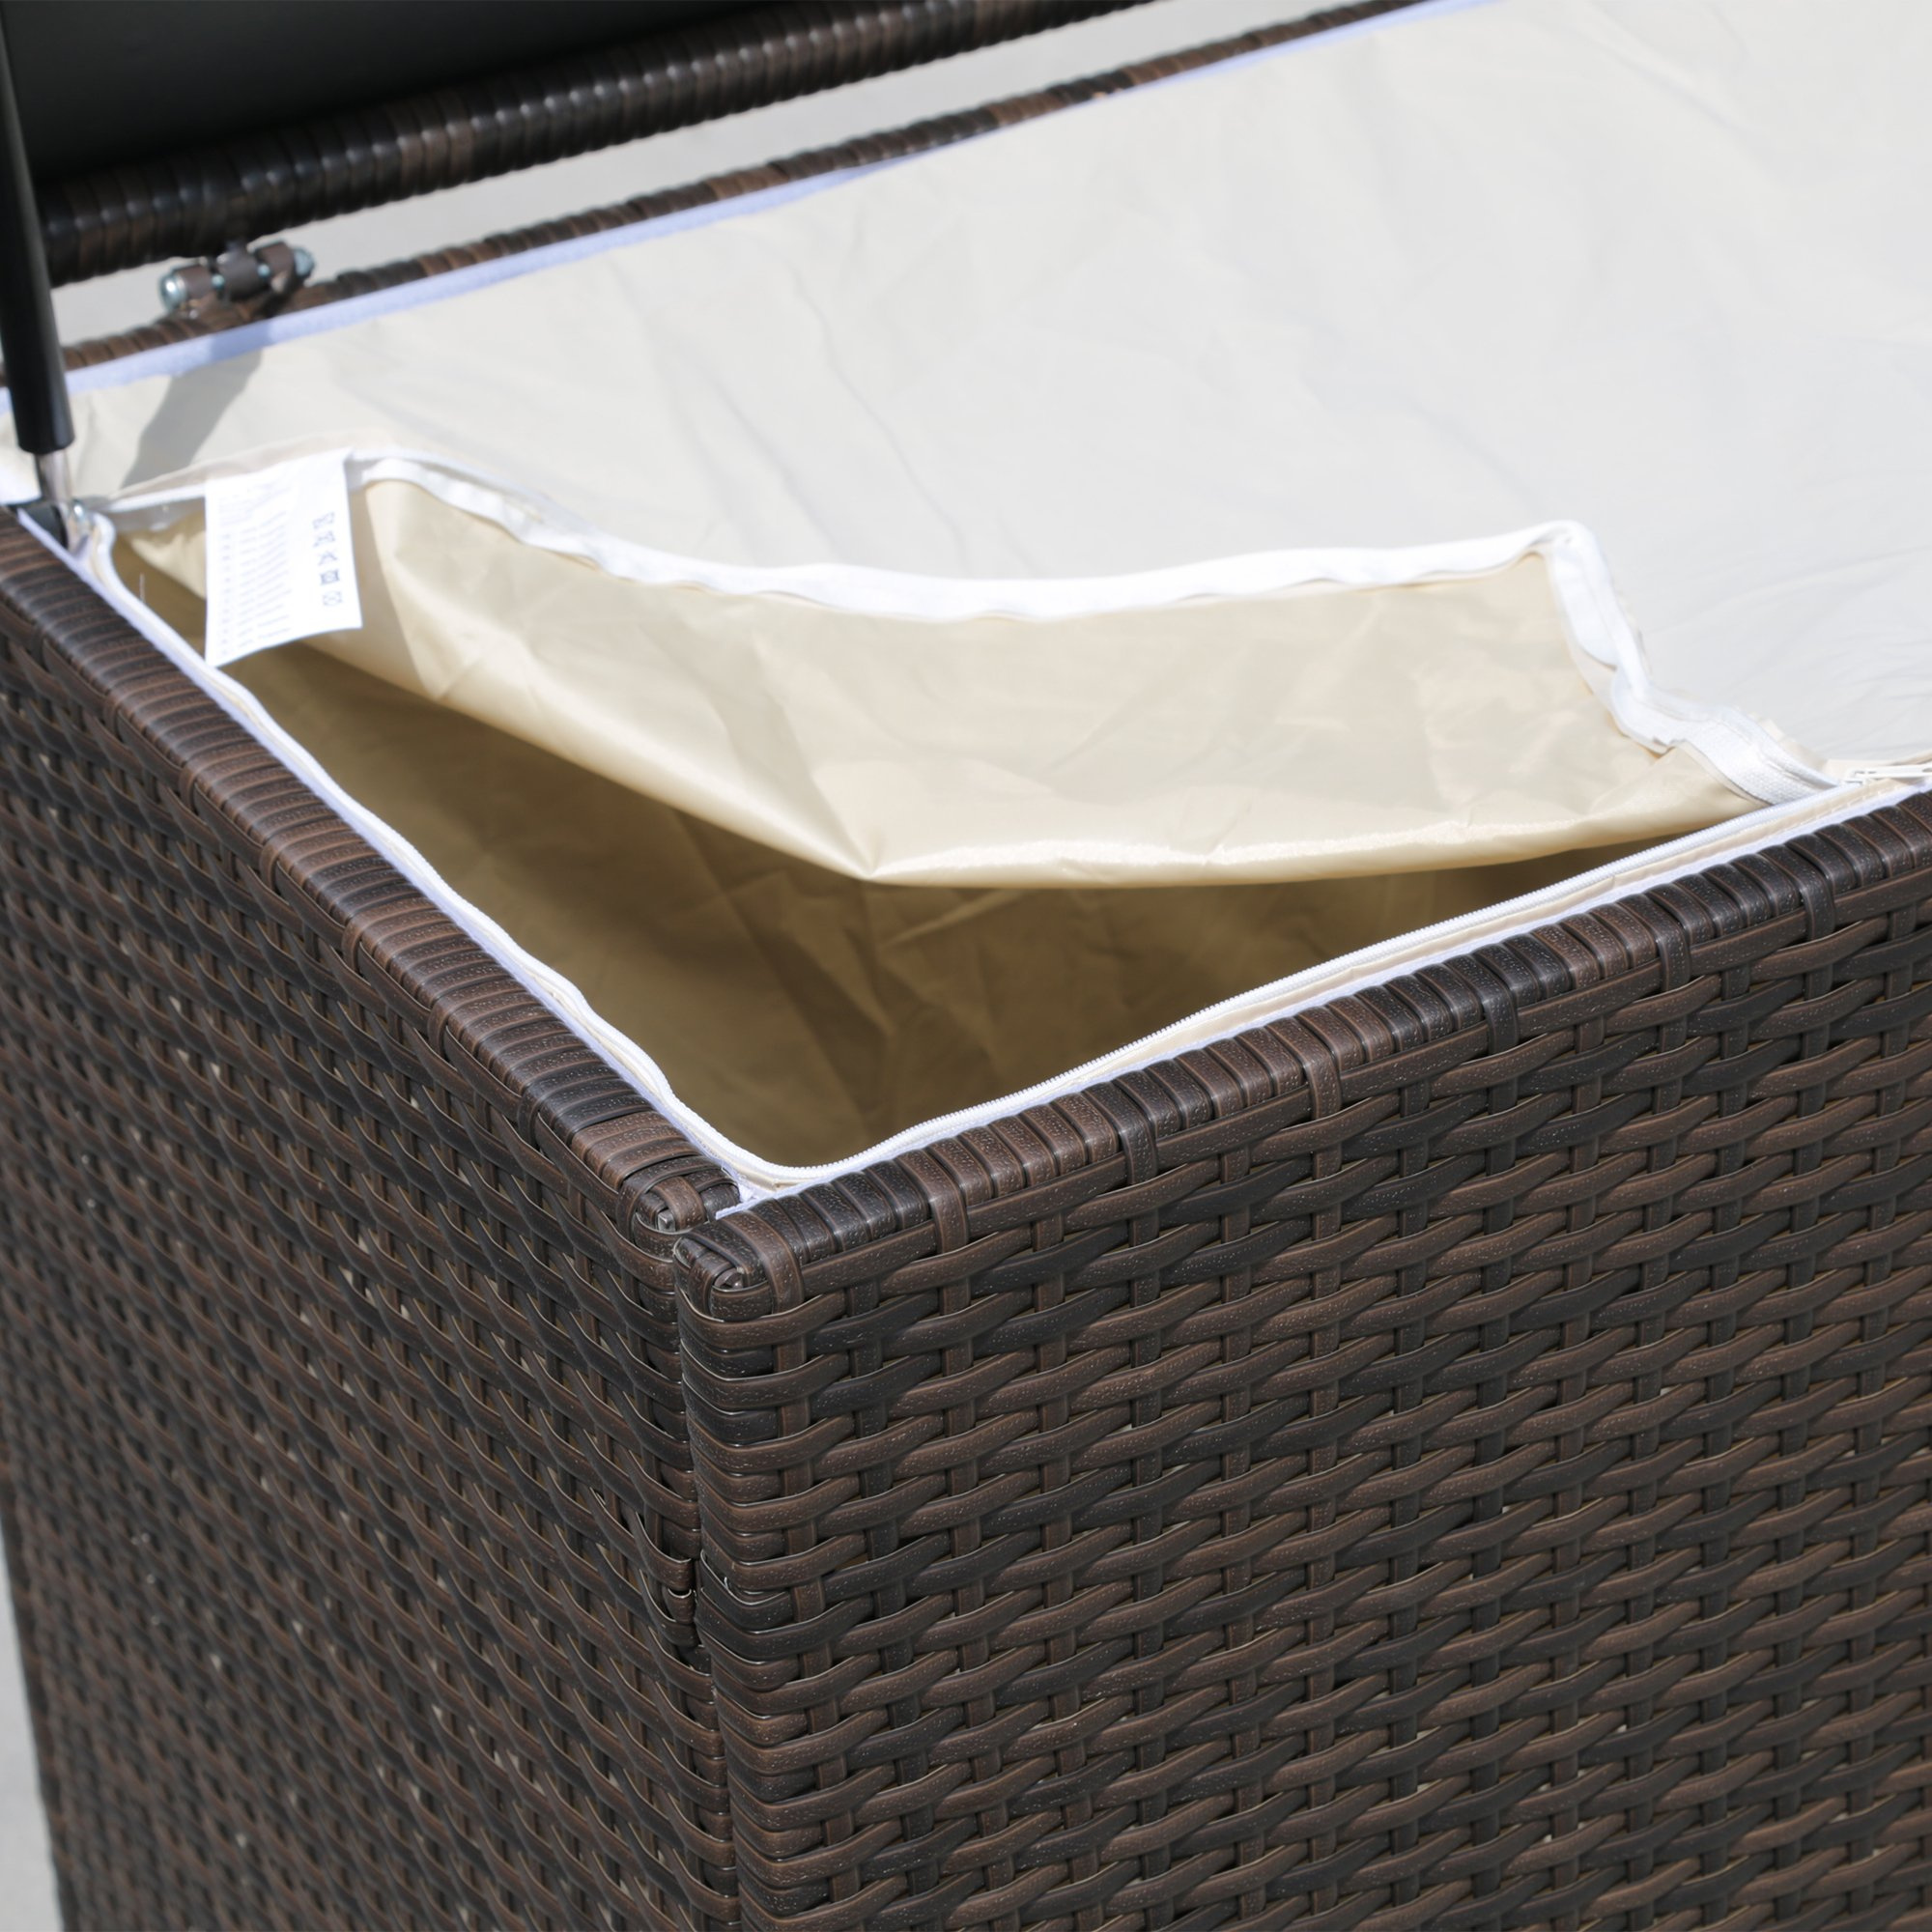 PATIOROMA Outdoor Patio Aluminum Frame Wicker Cushion Storage Bin Deck Box, Espresso Brown by PATIOROMA (Image #3)